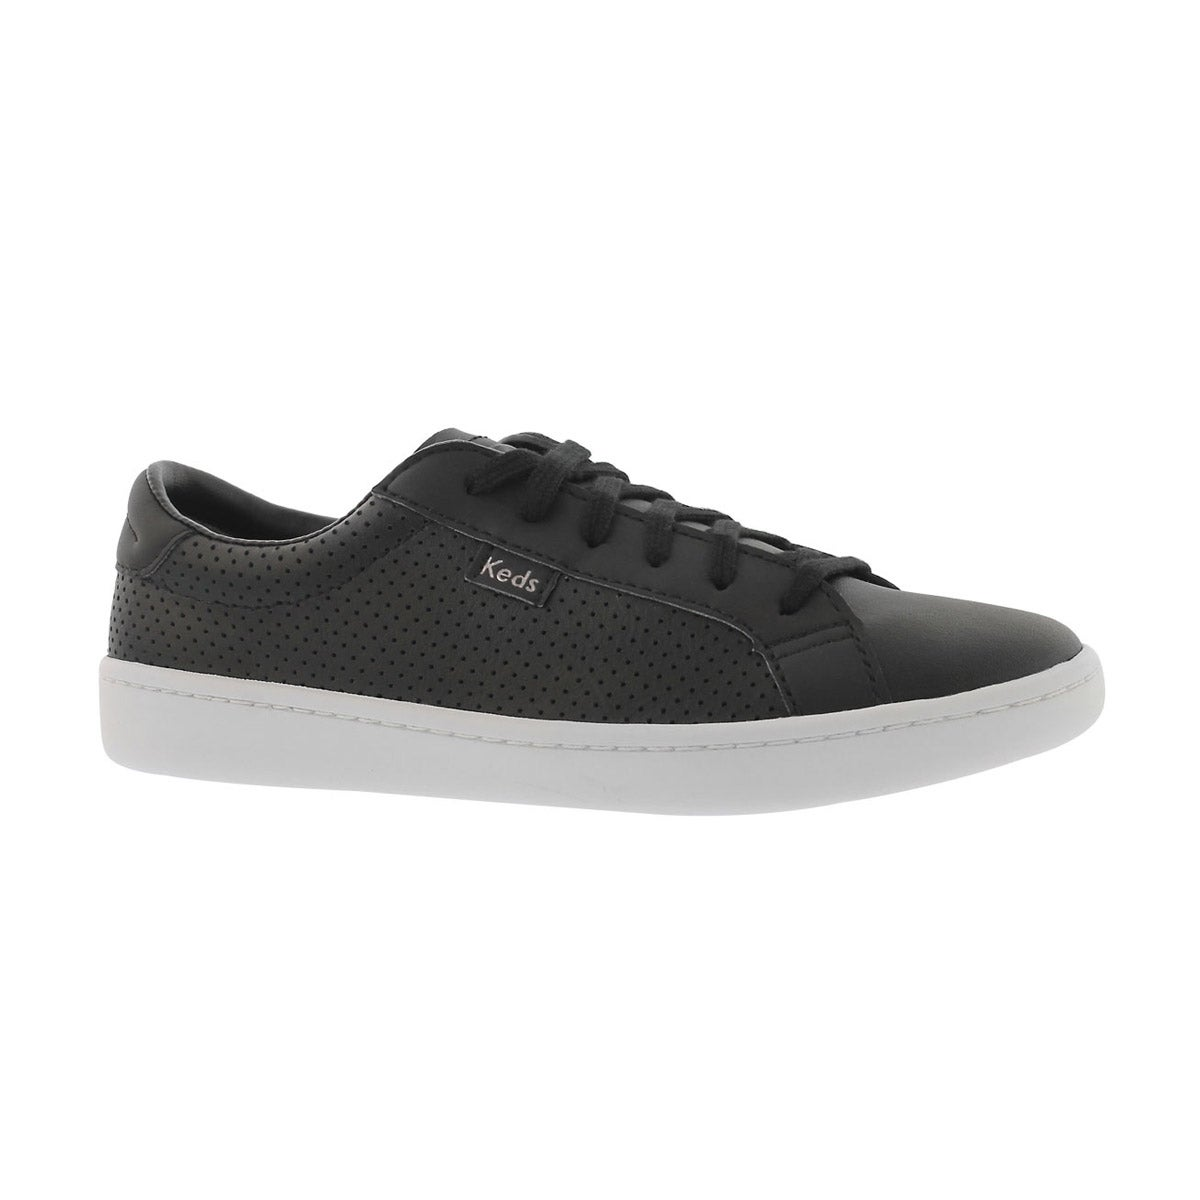 Girls' ACE black perforated lace up sneakers